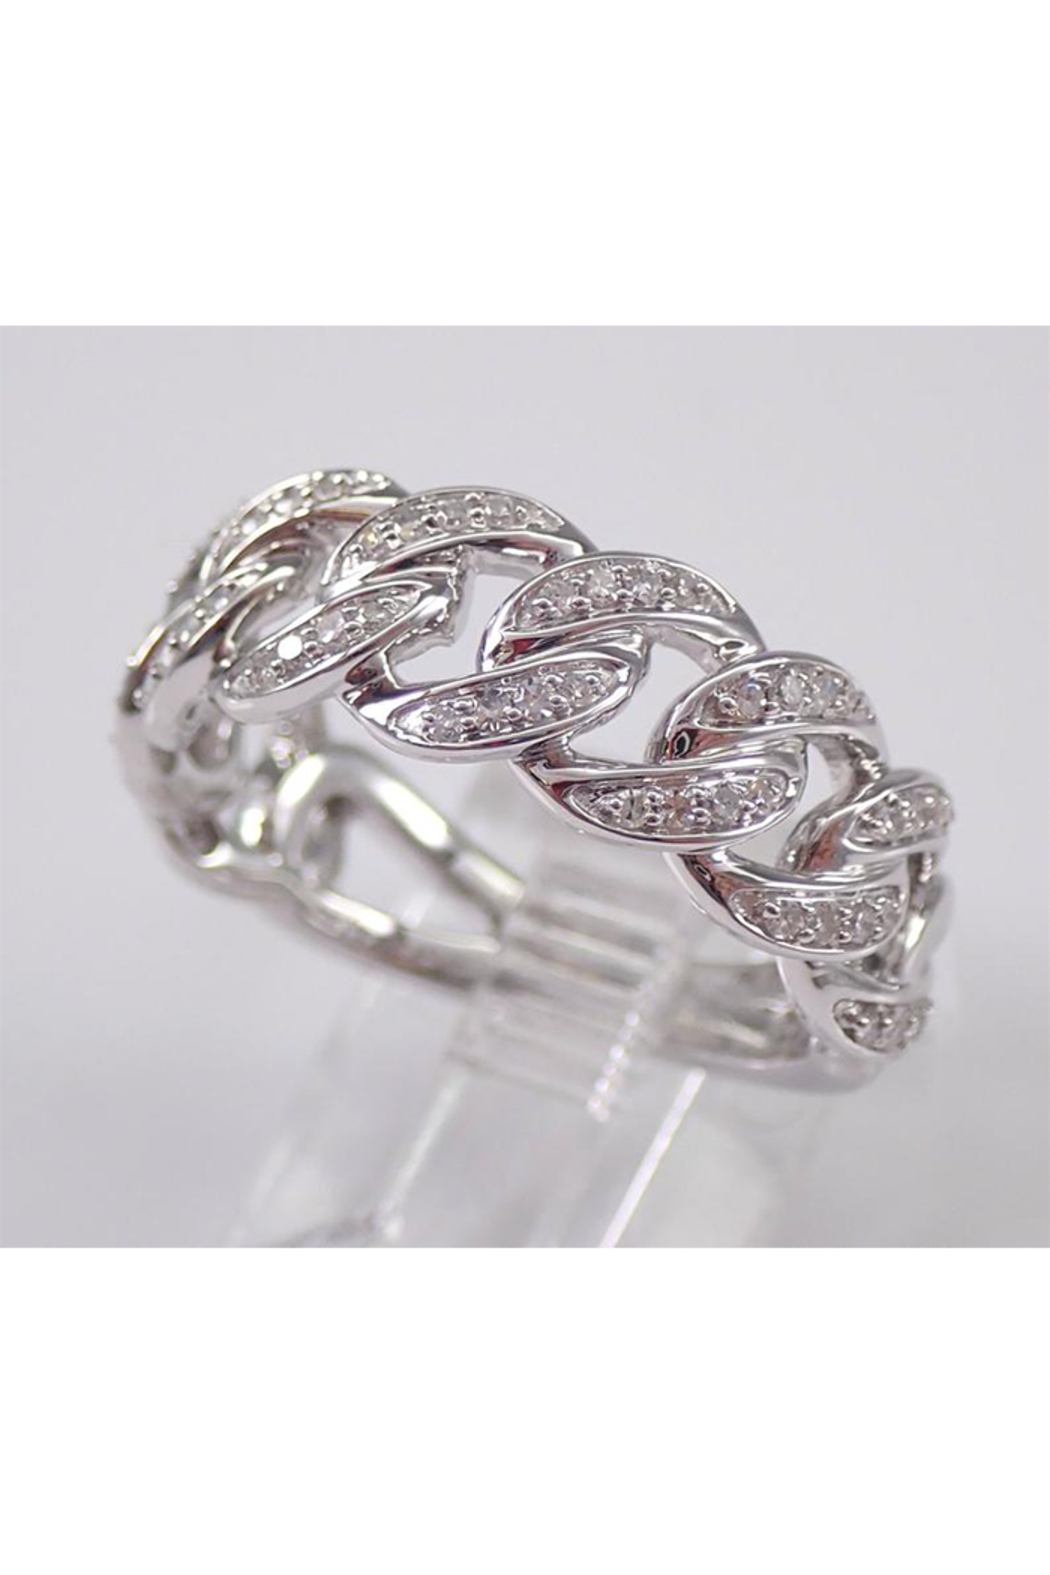 Margolin & Co 14K White Gold CHAIN LINK Diamond Wedding Ring Anniversary Band Stackable Size 7 Unique Style - Side Cropped Image